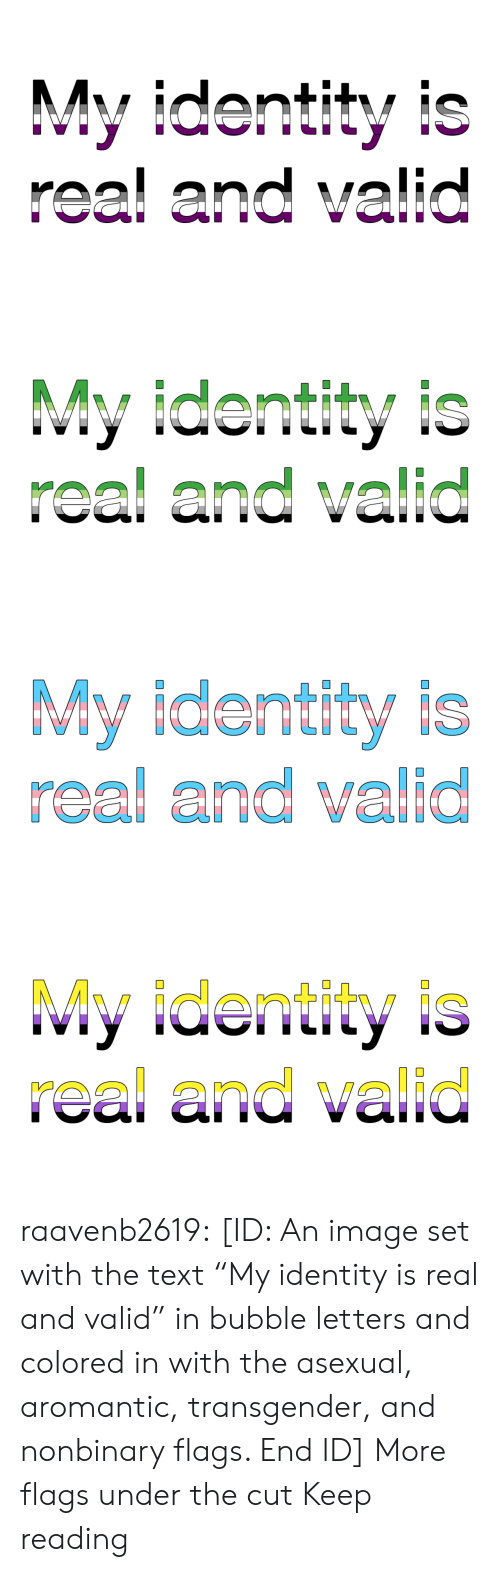 "transgender: My identity is  real and valid   My identity is  real and valid   My identity is  real and valid   My identity is  real and valid raavenb2619:  [ID: An image set with the text ""My identity is real and valid"" in bubble letters and colored in with the asexual, aromantic, transgender, and nonbinary flags. End ID]  More flags under the cut  Keep reading"